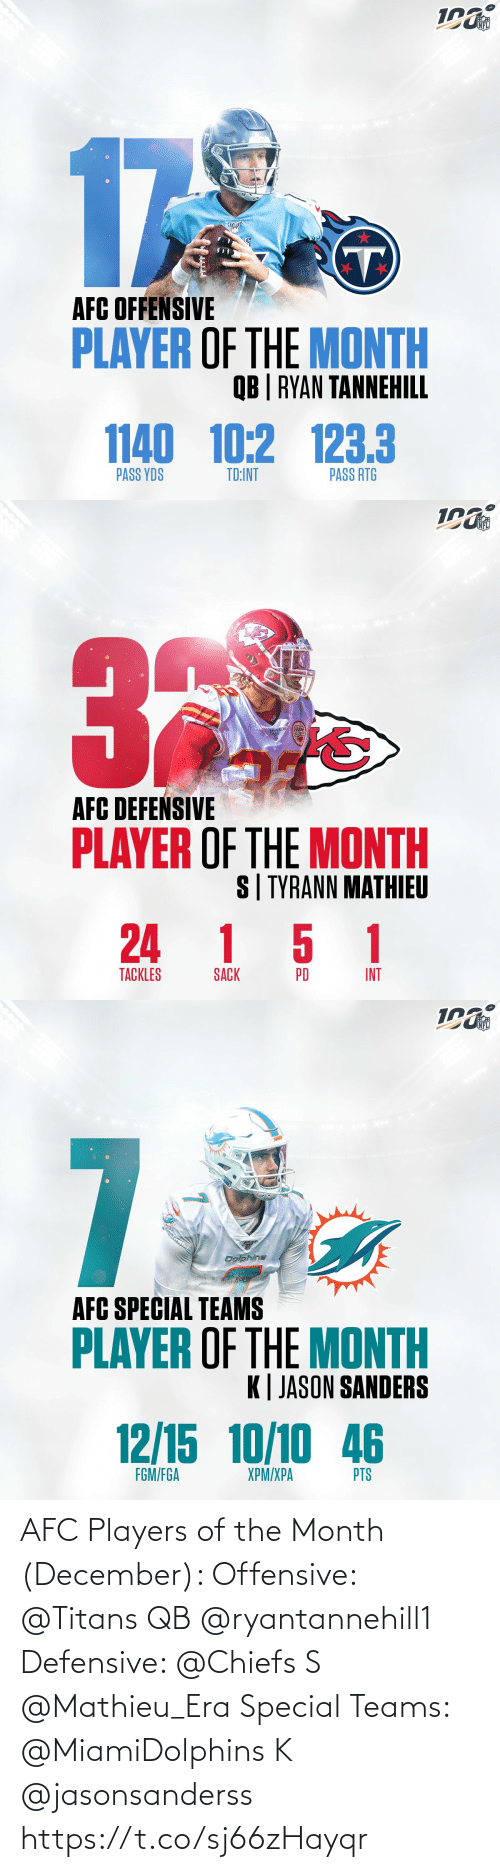 afc: NFL  17  AFC OFFENSIVE  PLAYER OF THE MONTH  QB | RYAN TANNEHILL  1140 10:2 123.3  PASS RTG  PASS YDS  TD:INT   NFL  AFC DEFEŃSIVE  PLAYER OF THE MONTH  S| TYRANN MATHIEU  24 1 5 1  TACKLES  INT  PD  SACK   NFL  7  Dolphins  AFC SPECIAL TEAMS  PLAYER OF THE MONTH  K| JASON SANDERS  12/15 10/10 46  FGM/FGA  XPM/XPA  PTS AFC Players of the Month (December):   Offensive: @Titans QB @ryantannehill1    Defensive: @Chiefs S @Mathieu_Era   Special Teams: @MiamiDolphins K @jasonsanderss https://t.co/sj66zHayqr